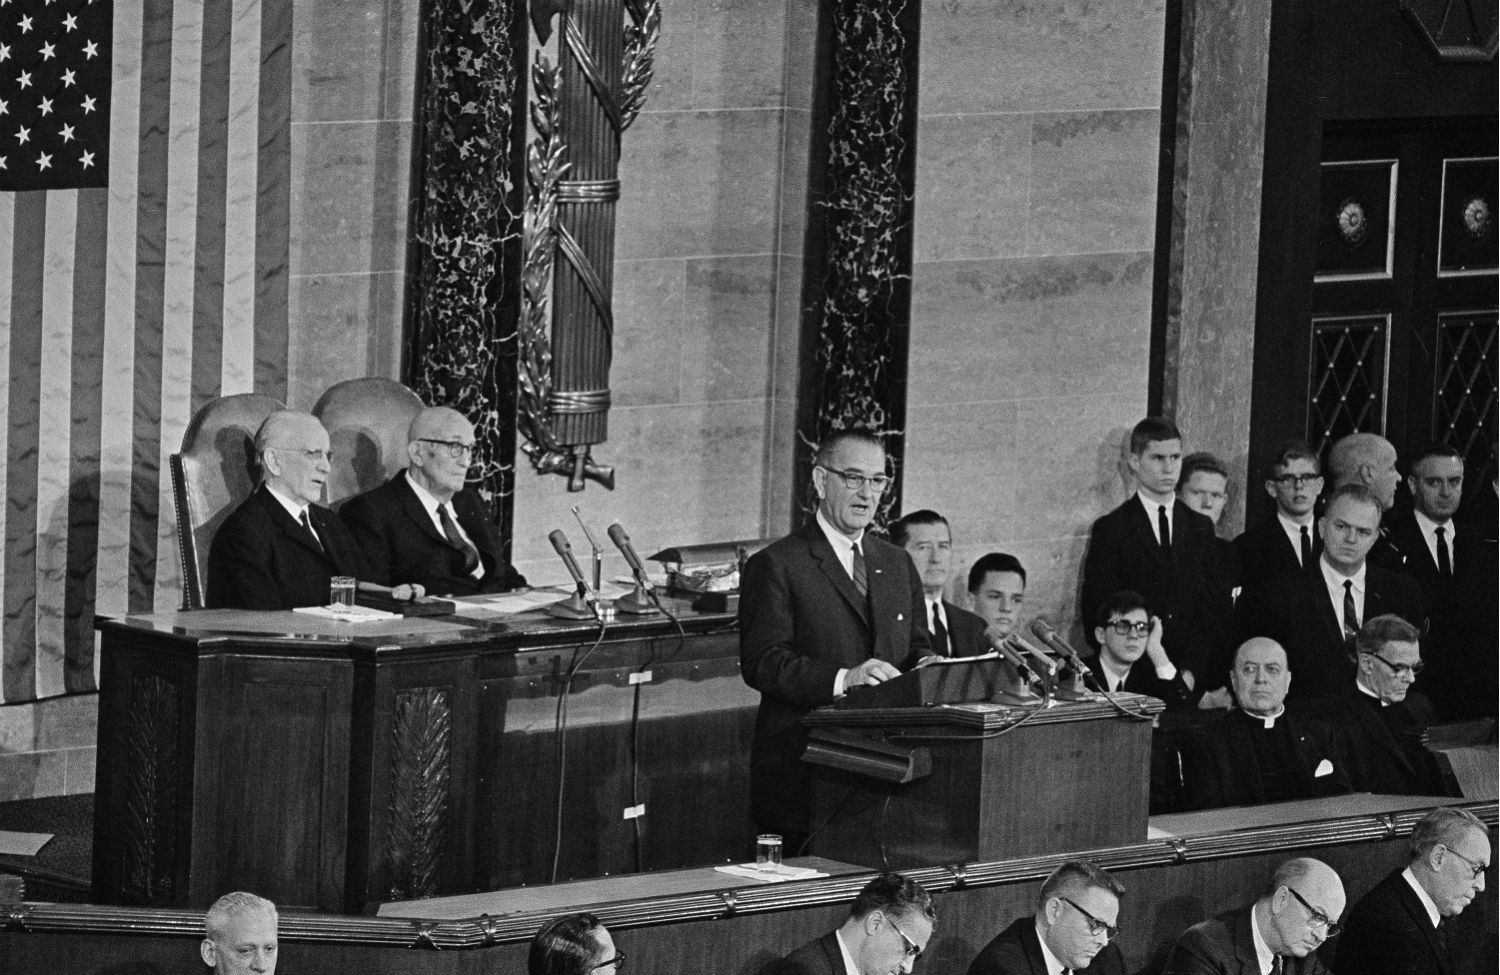 In-his-first-State-of-the-Union-address-on-January-8-1964-President-Lyndon-B.-Johnson-announced-an-unconditional-war-on-poverty-in-America.-AP-Photo